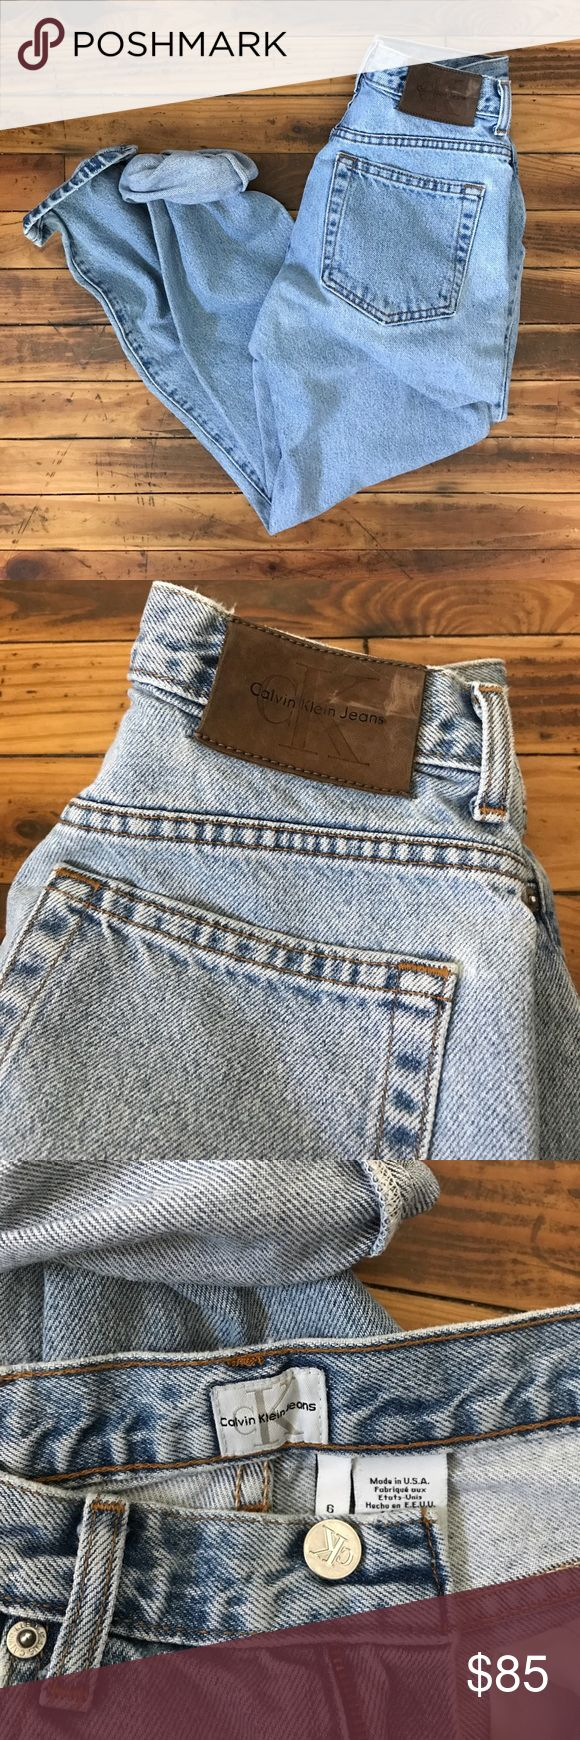 "VINTAGE union made Calvin Klein light wash jeans high waisted light wash CK jeans from the early 1980s. marked size 6. actual flat measurements are - waist 13"", hips 19"", front rise 11 1/4"", back rise 15"", inseam 28.5"", outseam 39"", leg opening 6.5"". in excellent vintage condition with overall gentle wear, soft, broken in but no major flaws! leather logo patch on back. very flattering tapered high-waist cut, especially on women with a tiny waist and fuller hips! gorgeous vintage denim! no…"